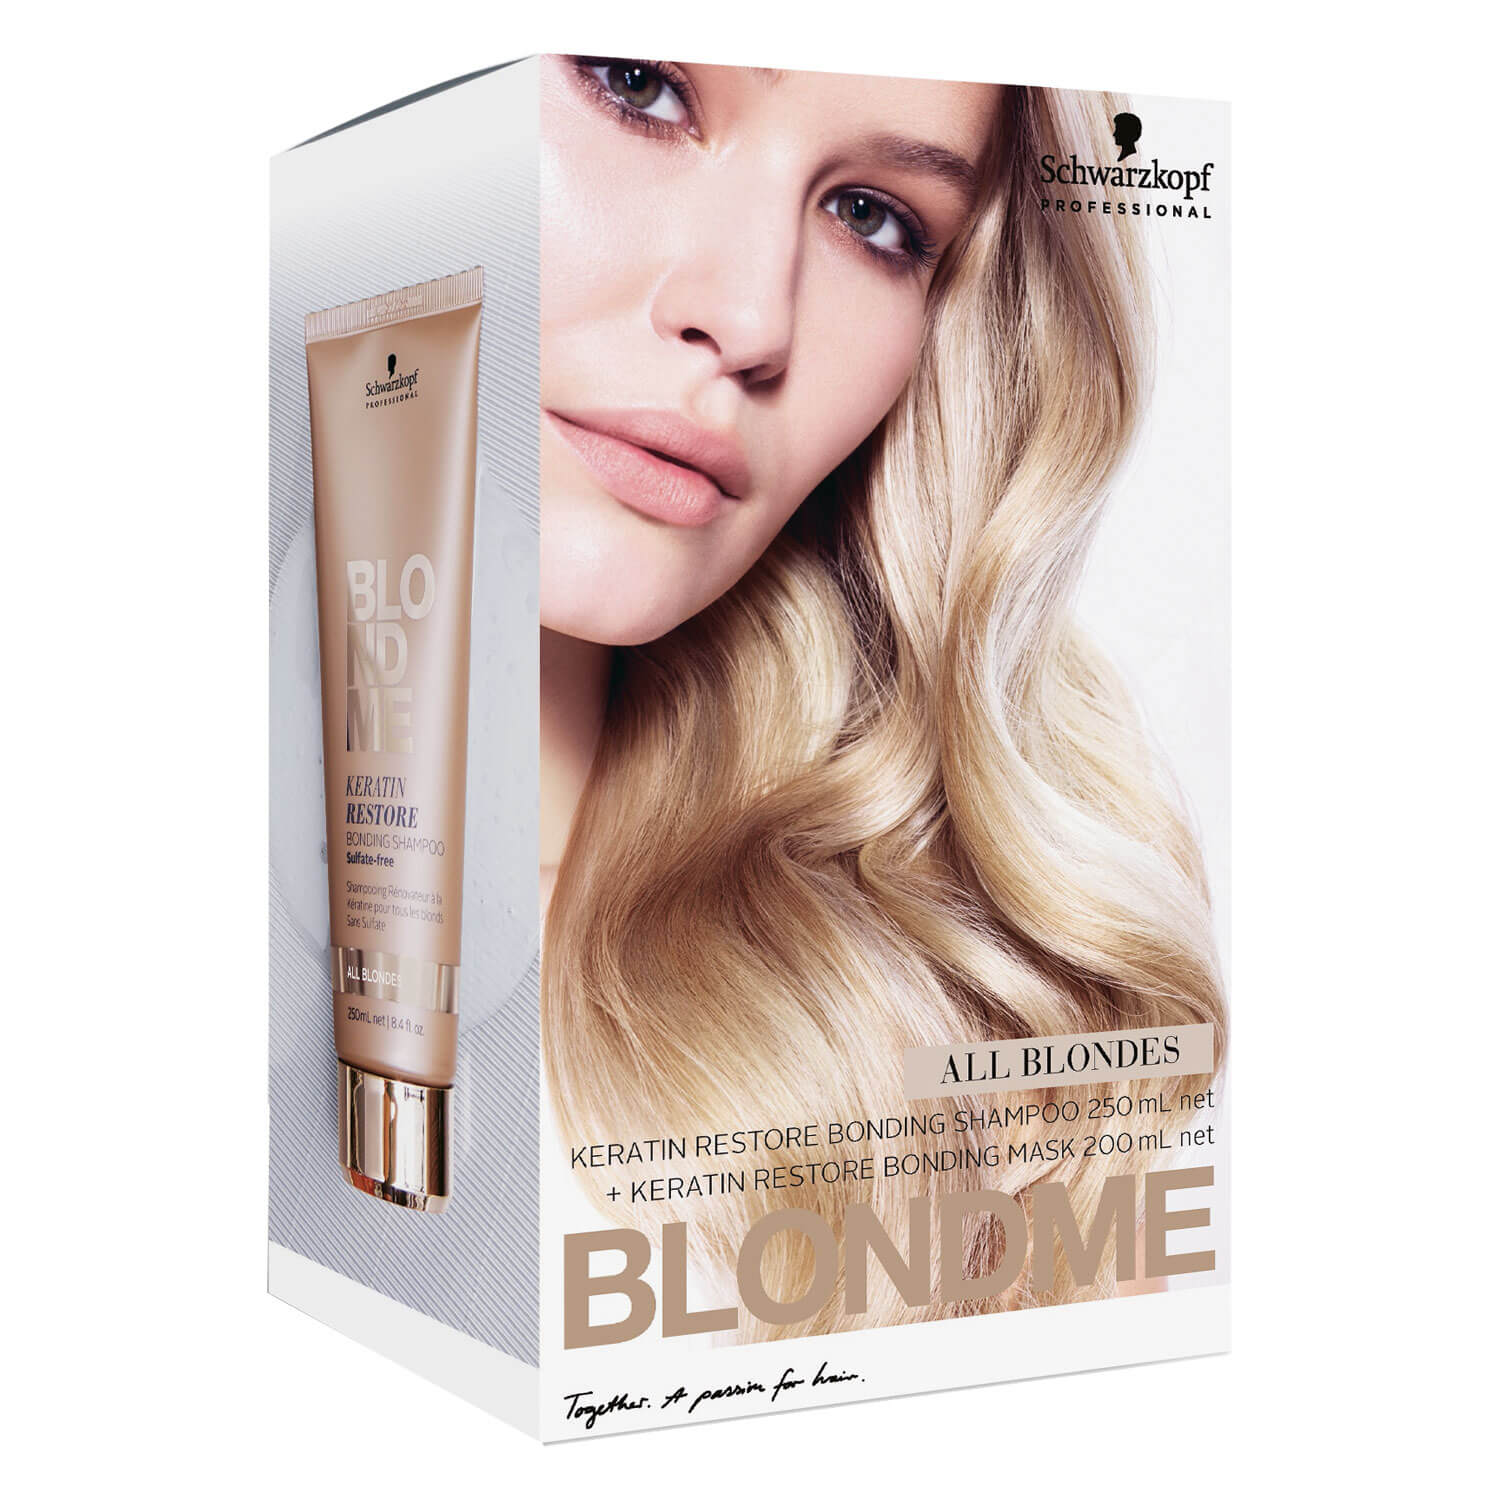 Blondme - All Blondes Duo Pack